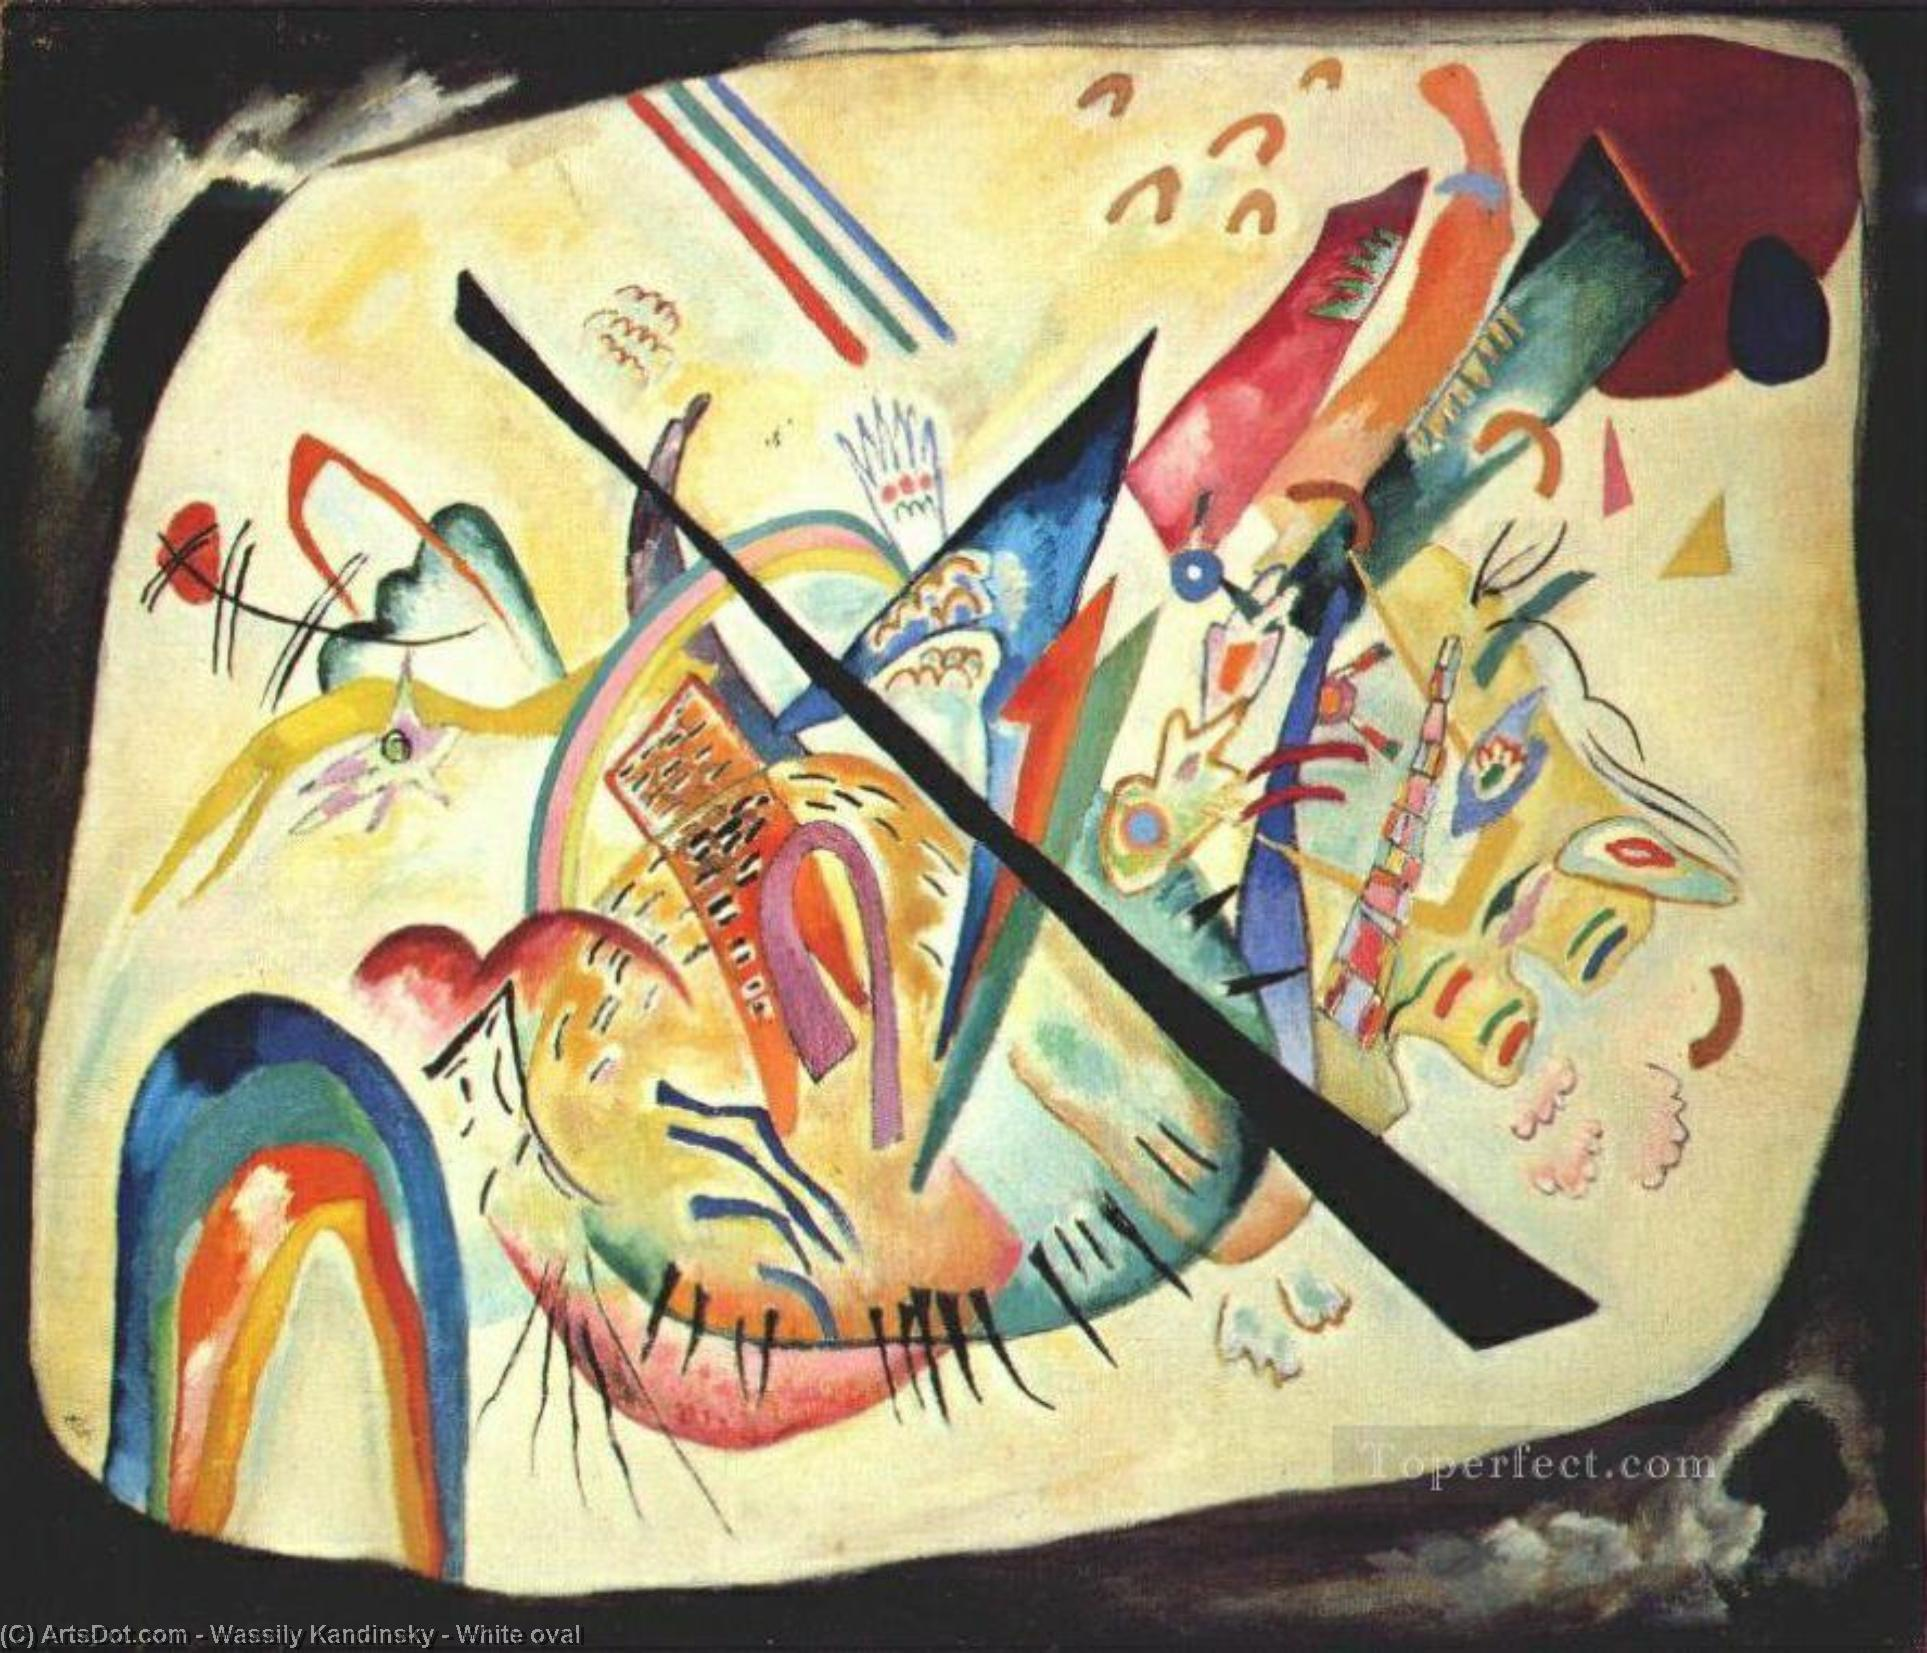 Wikioo.org - The Encyclopedia of Fine Arts - Painting, Artwork by Wassily Kandinsky - White oval